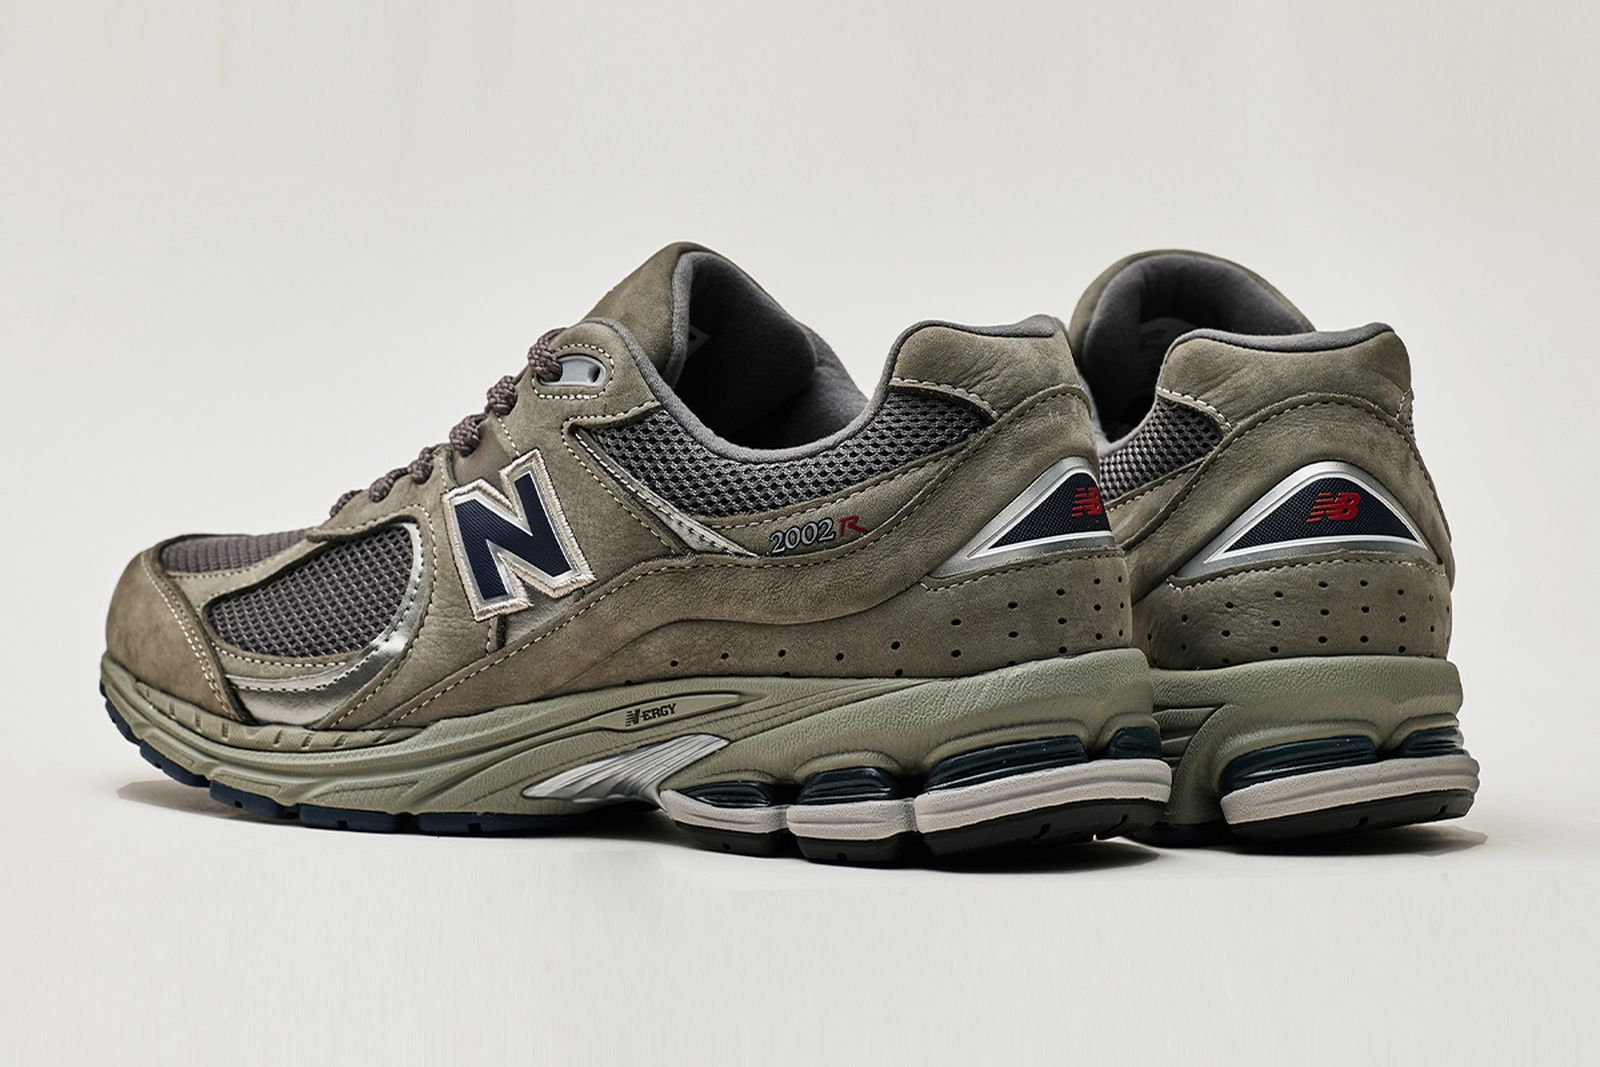 new-balance-2002r-release-date-price-04